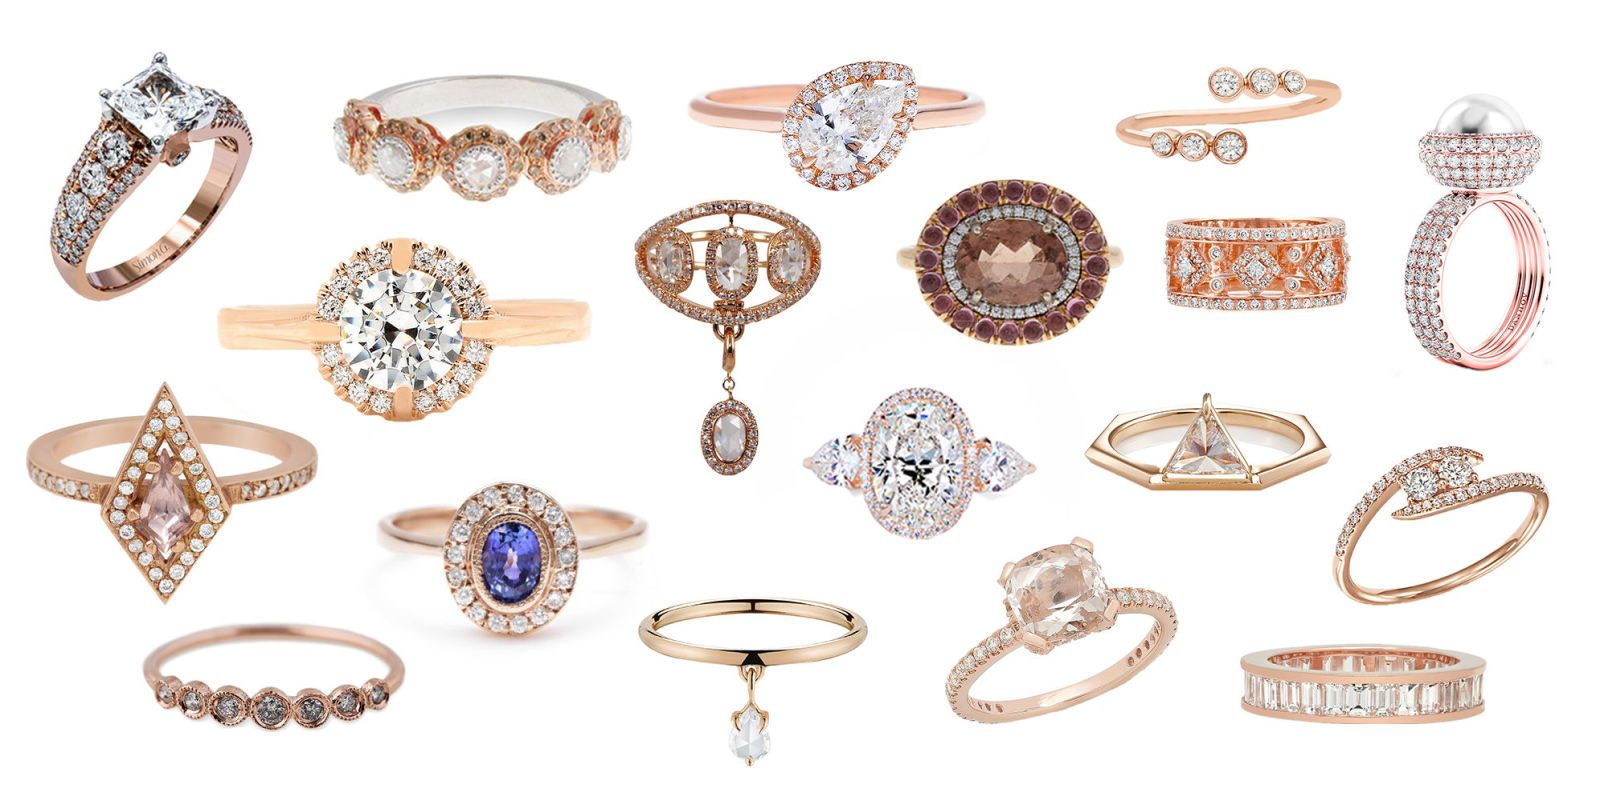 Beautiful Rose Gold Engagement Rings 18 Reasons to Consider a Rose